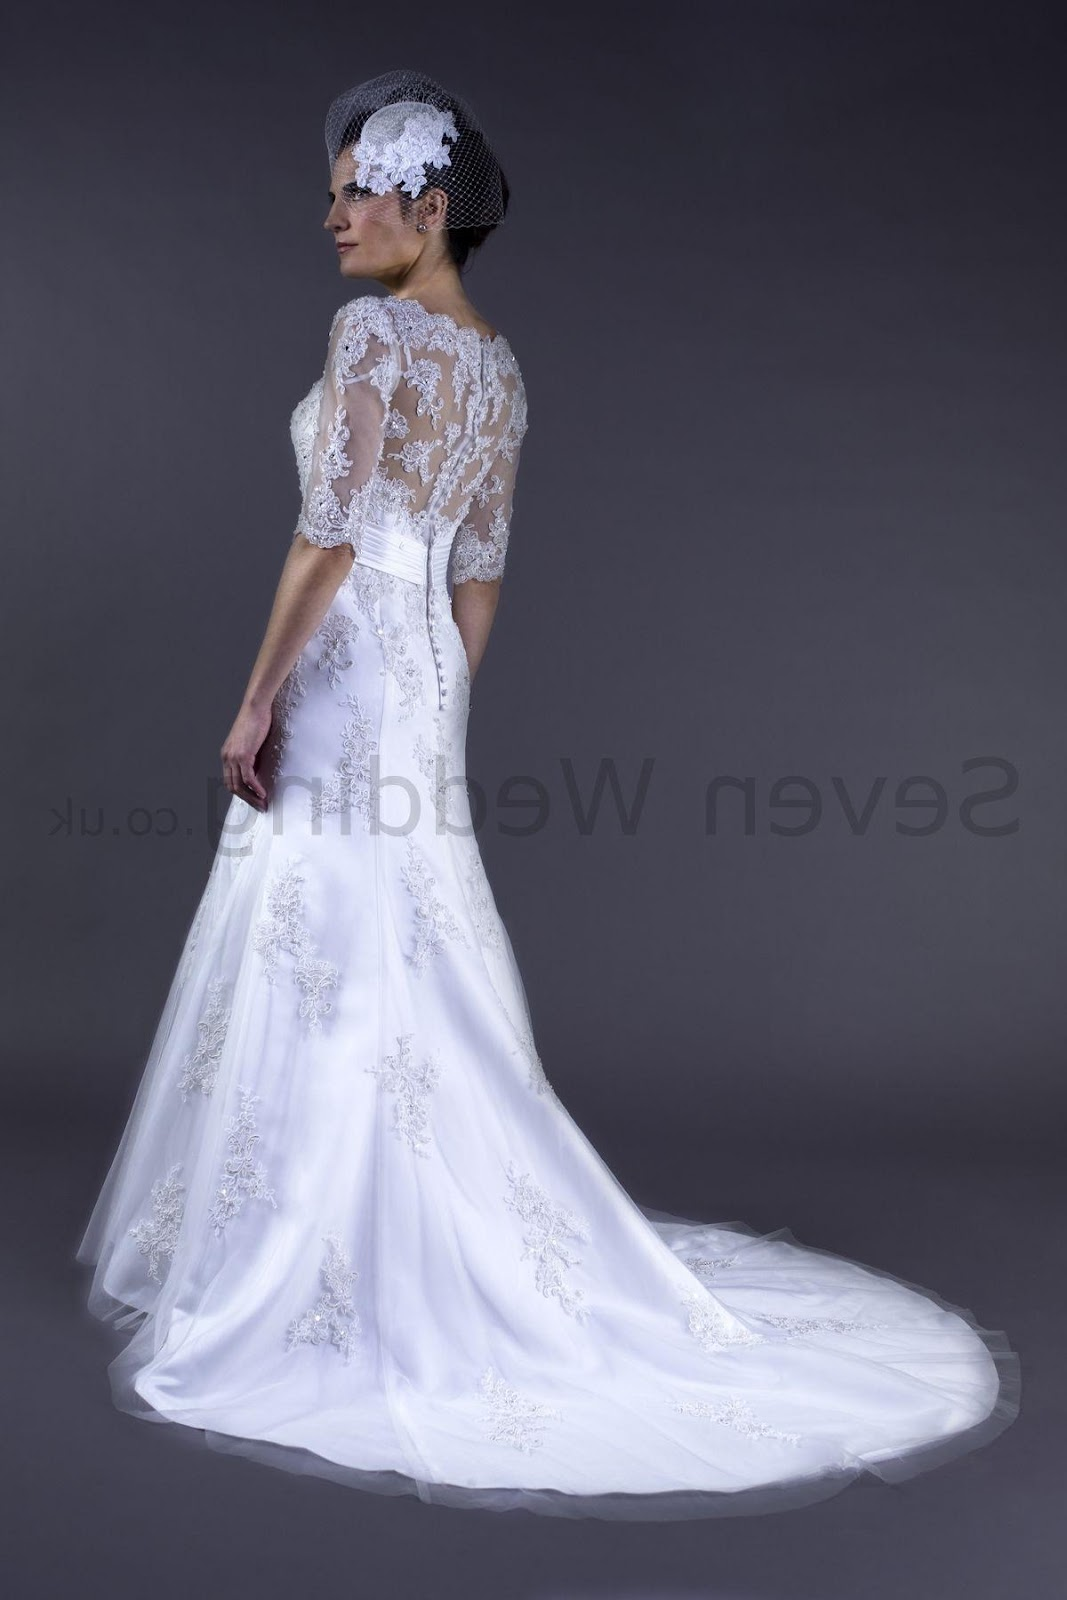 Amberly 39 s blog lace overlay wedding dress for Lace wedding dress overlay